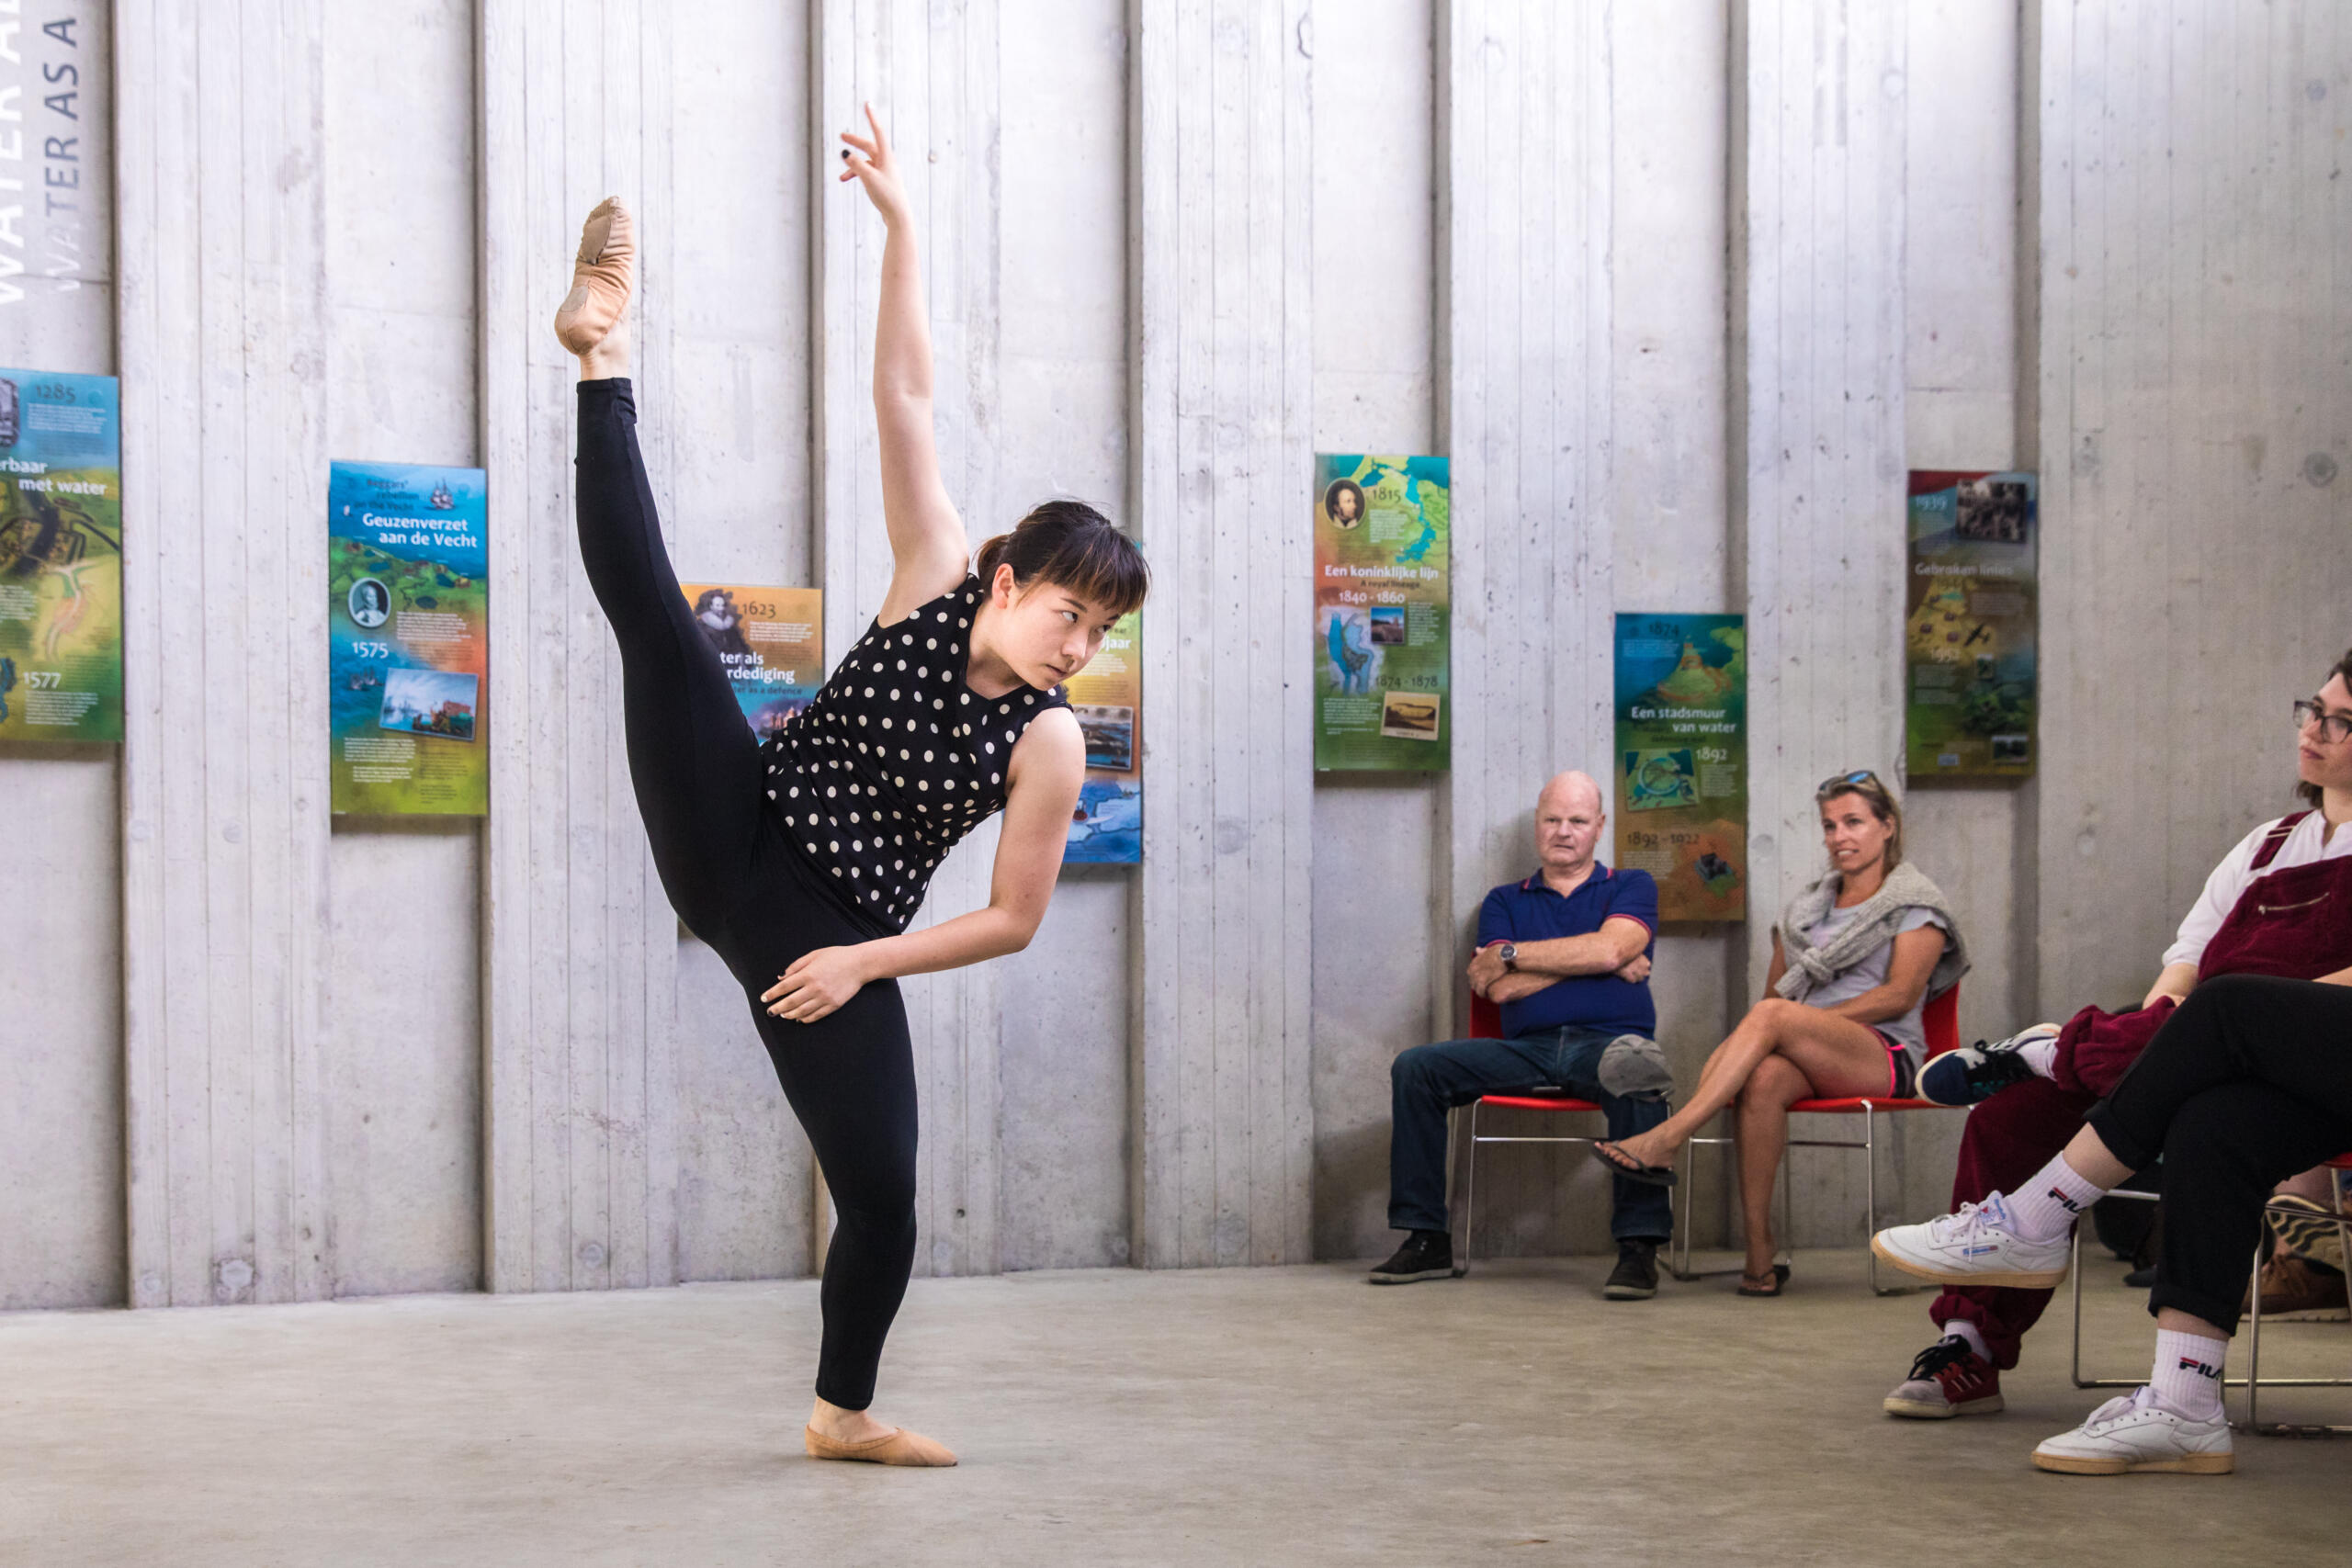 Dance theater artistic performance photographer Amsterdam Melanie lemahieu